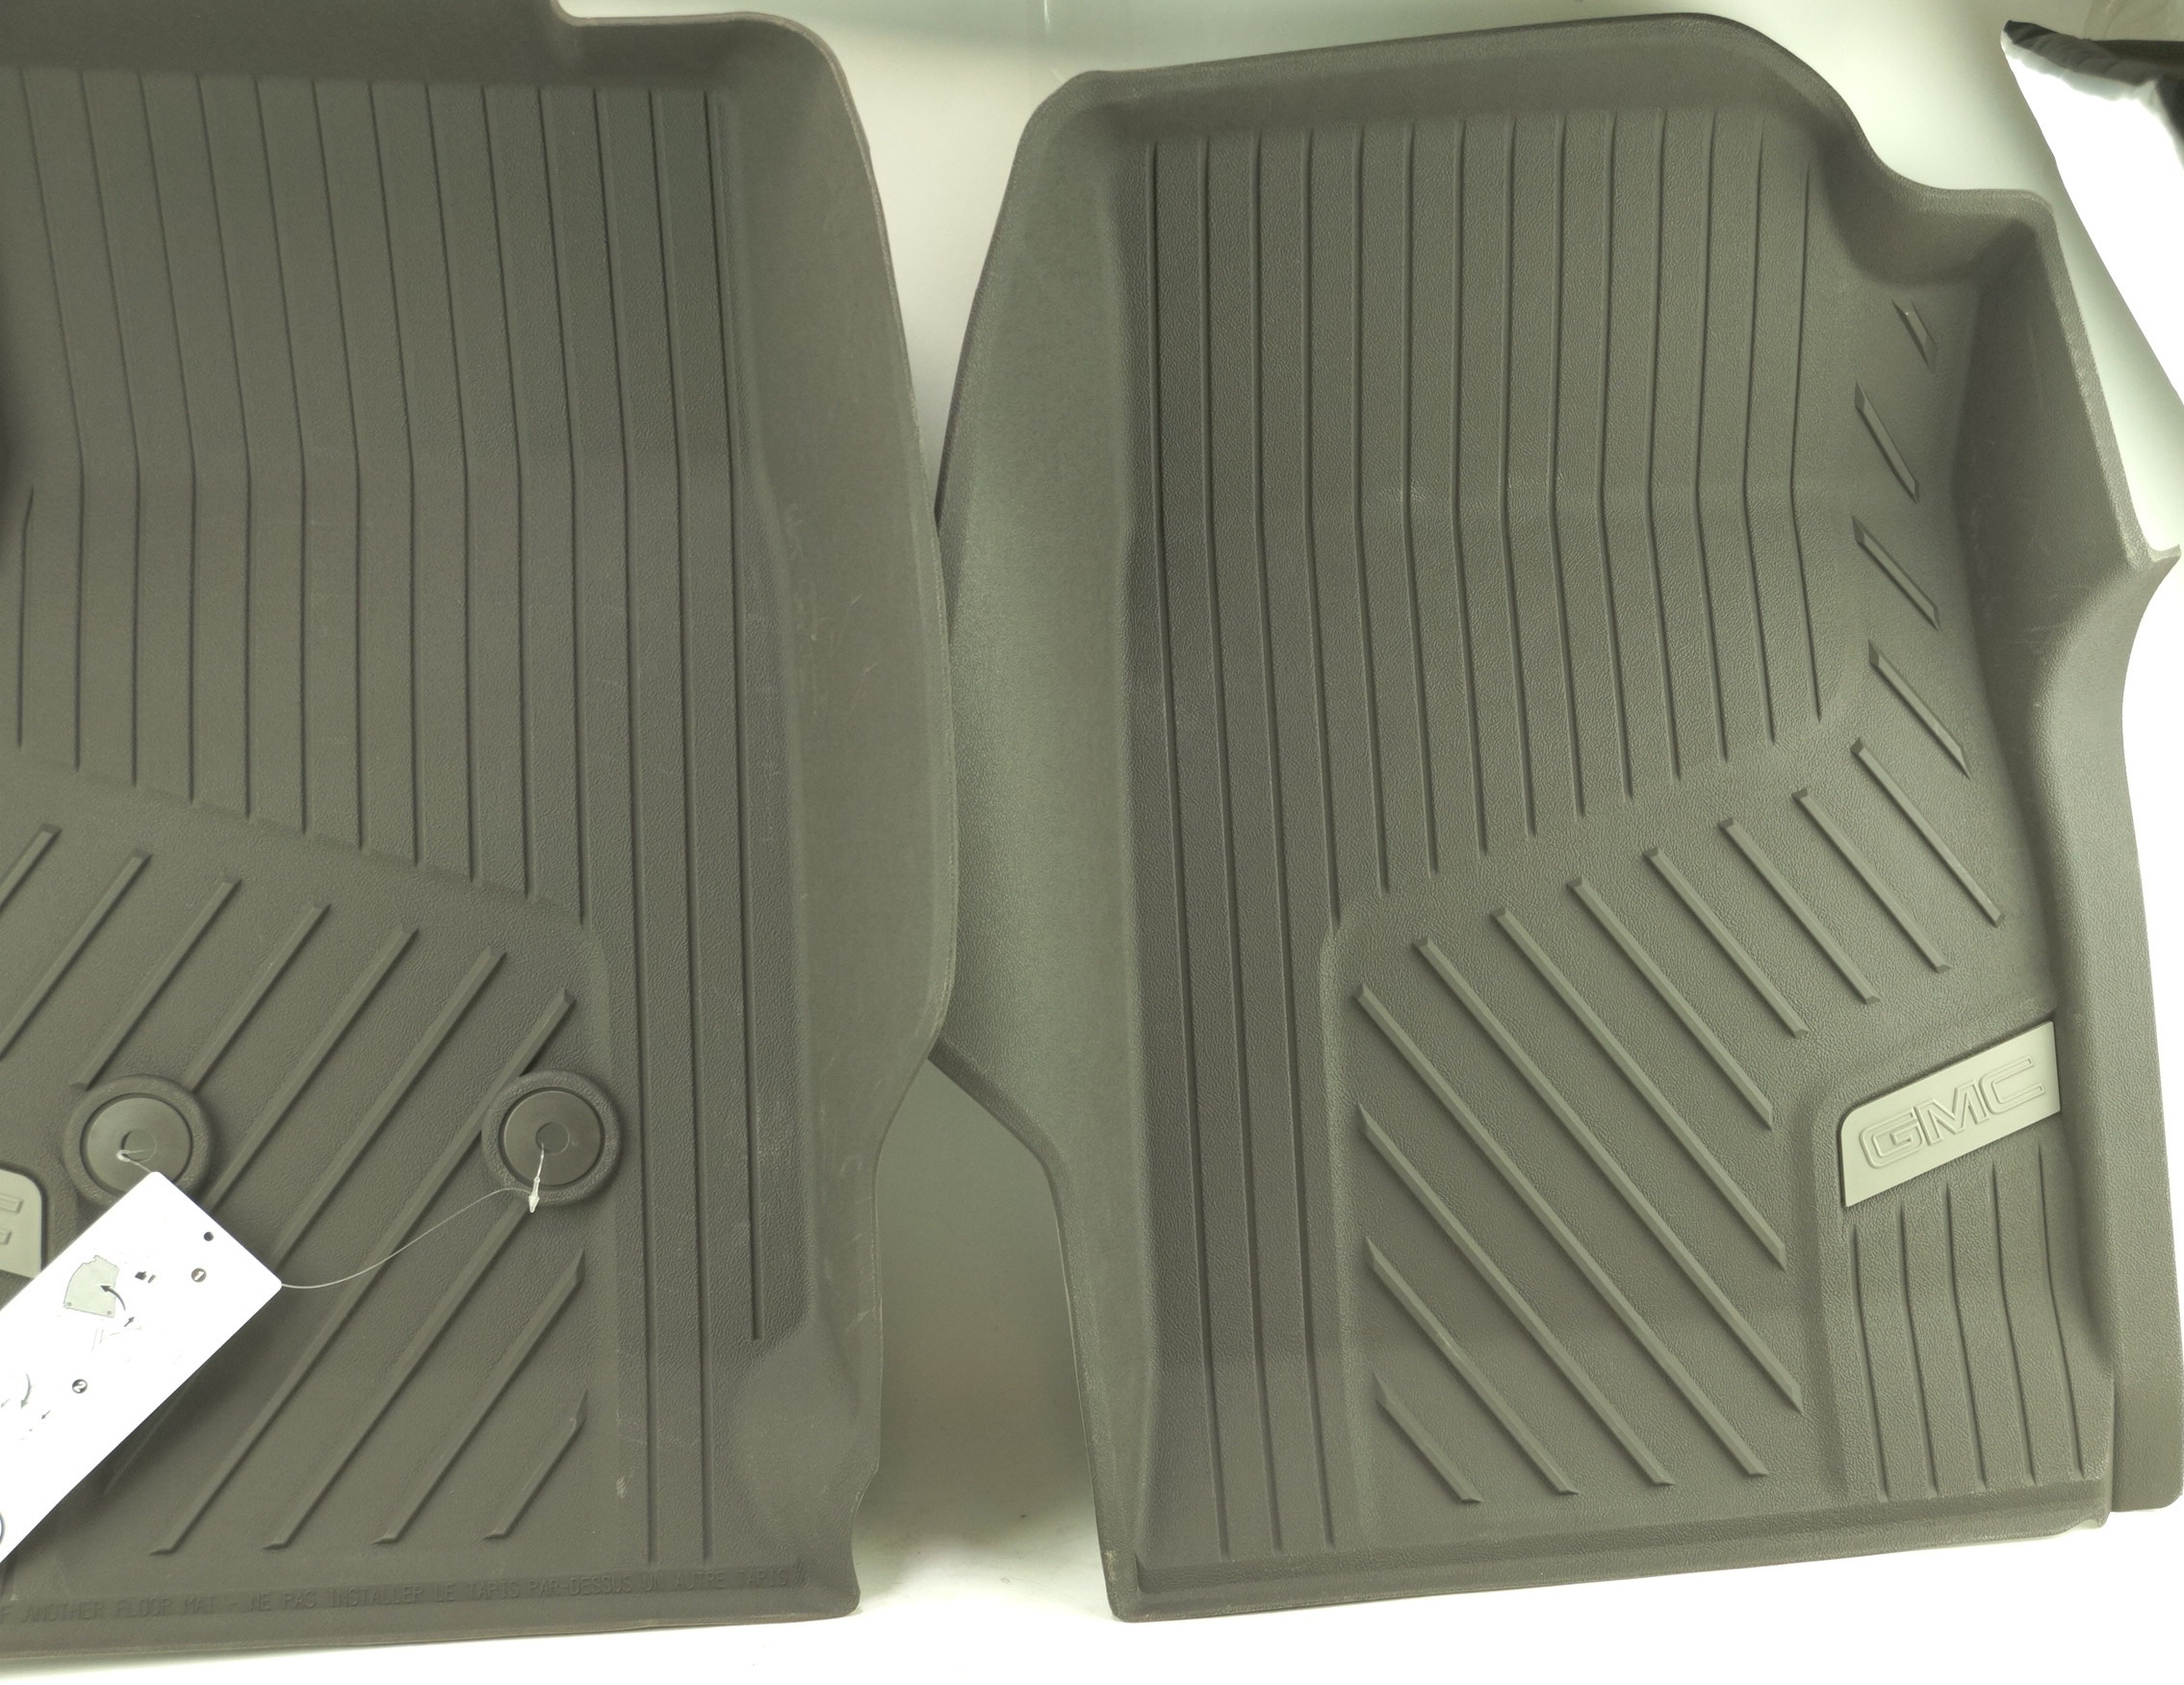 New OEM 84370641 Genuine GM Front Floor Liners All-Weather 15-20 GMC Canyon - image 2